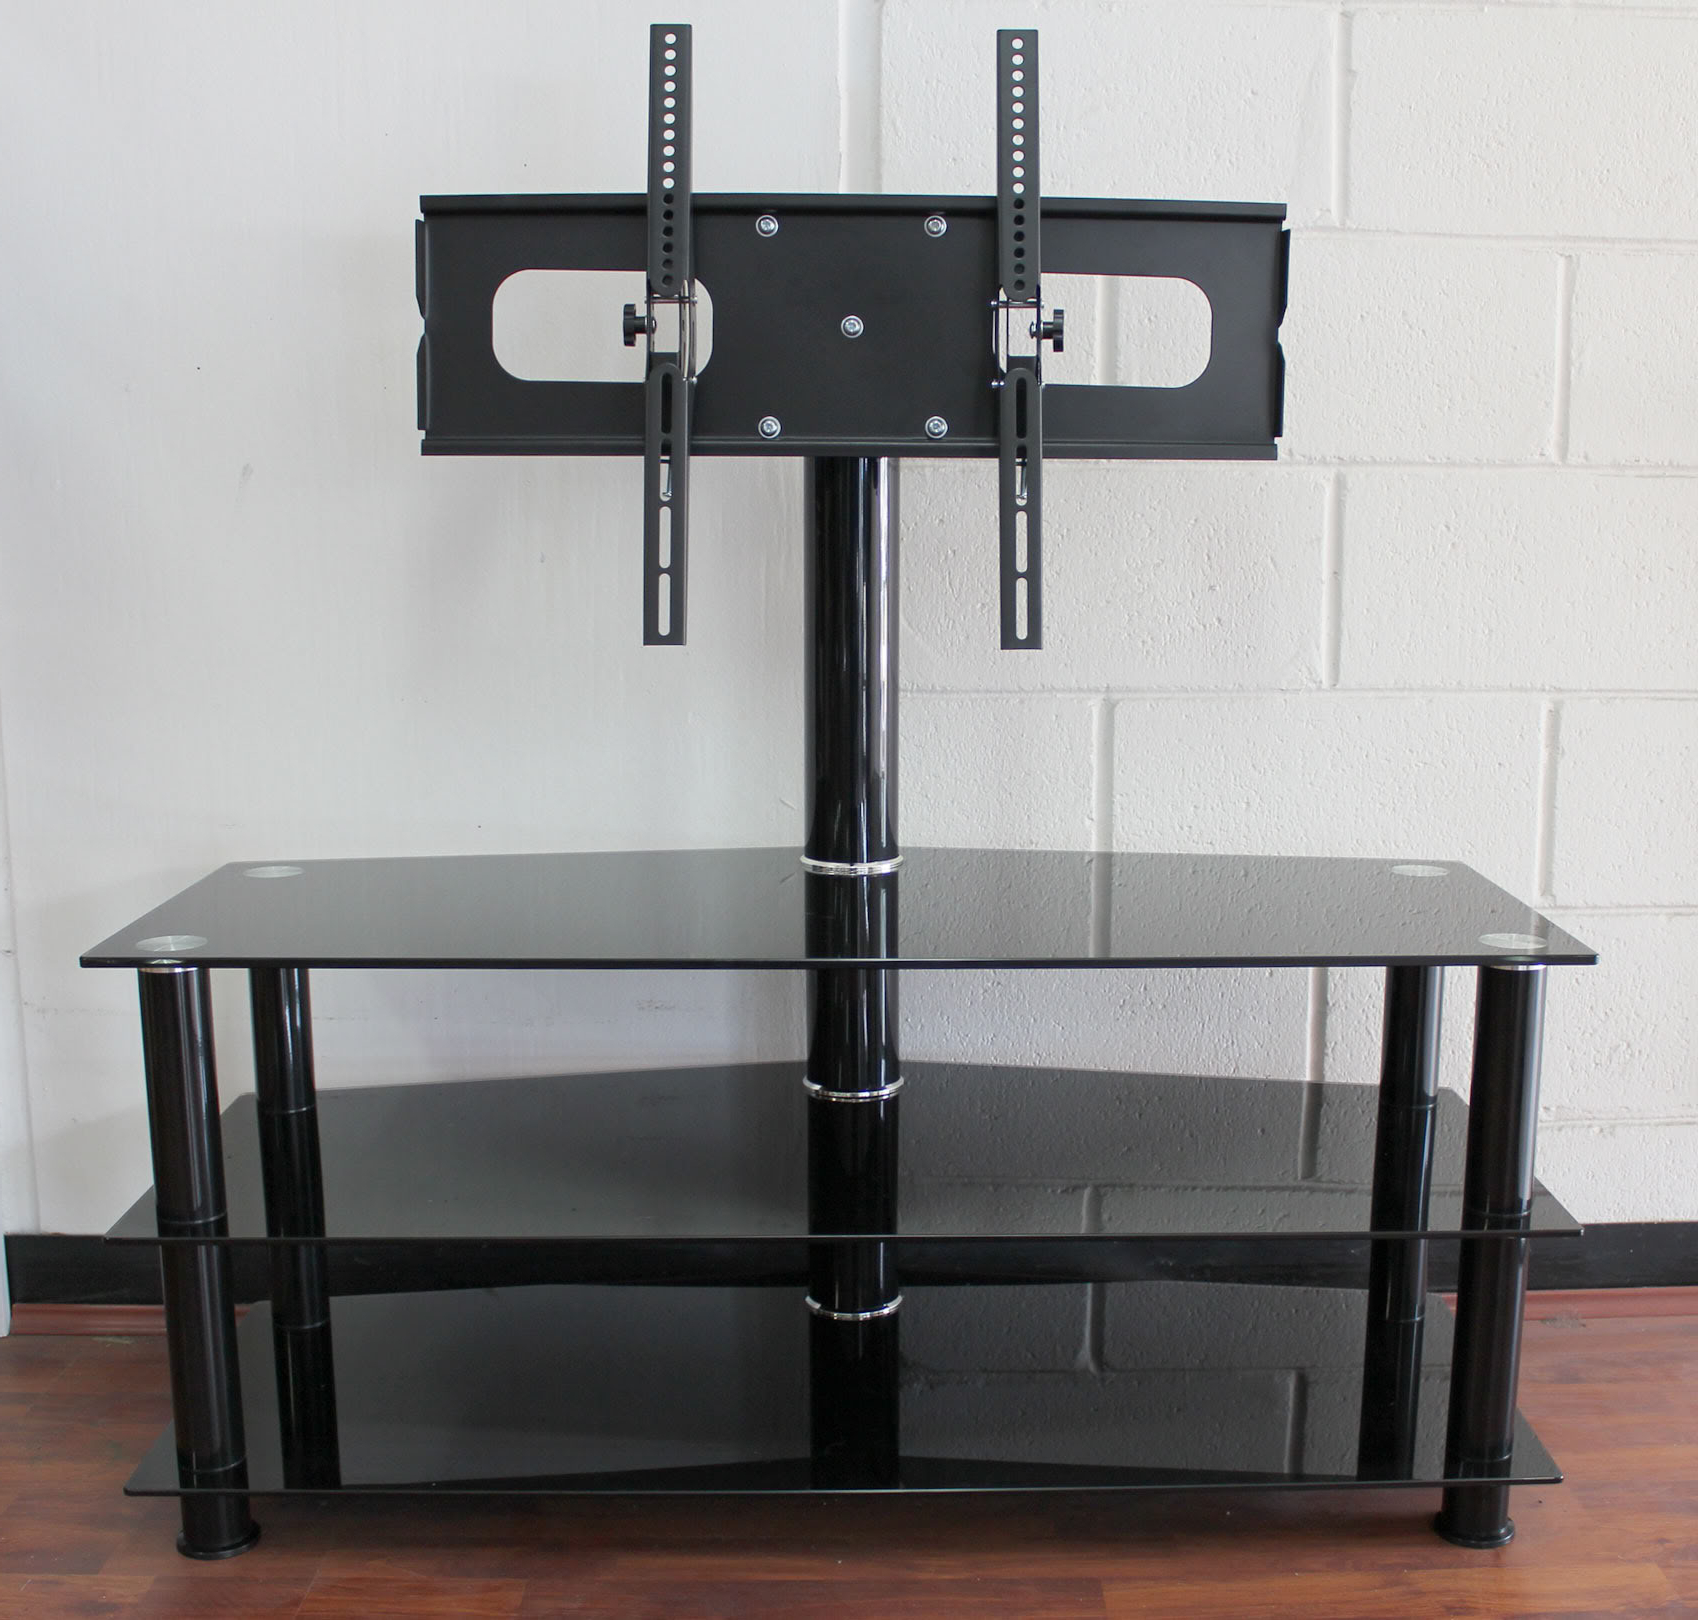 Ceiling Motorized Tv Brackets Stand Assembly Instructions Mount In Most Recently Released Swivel Black Glass Tv Stands (View 4 of 20)